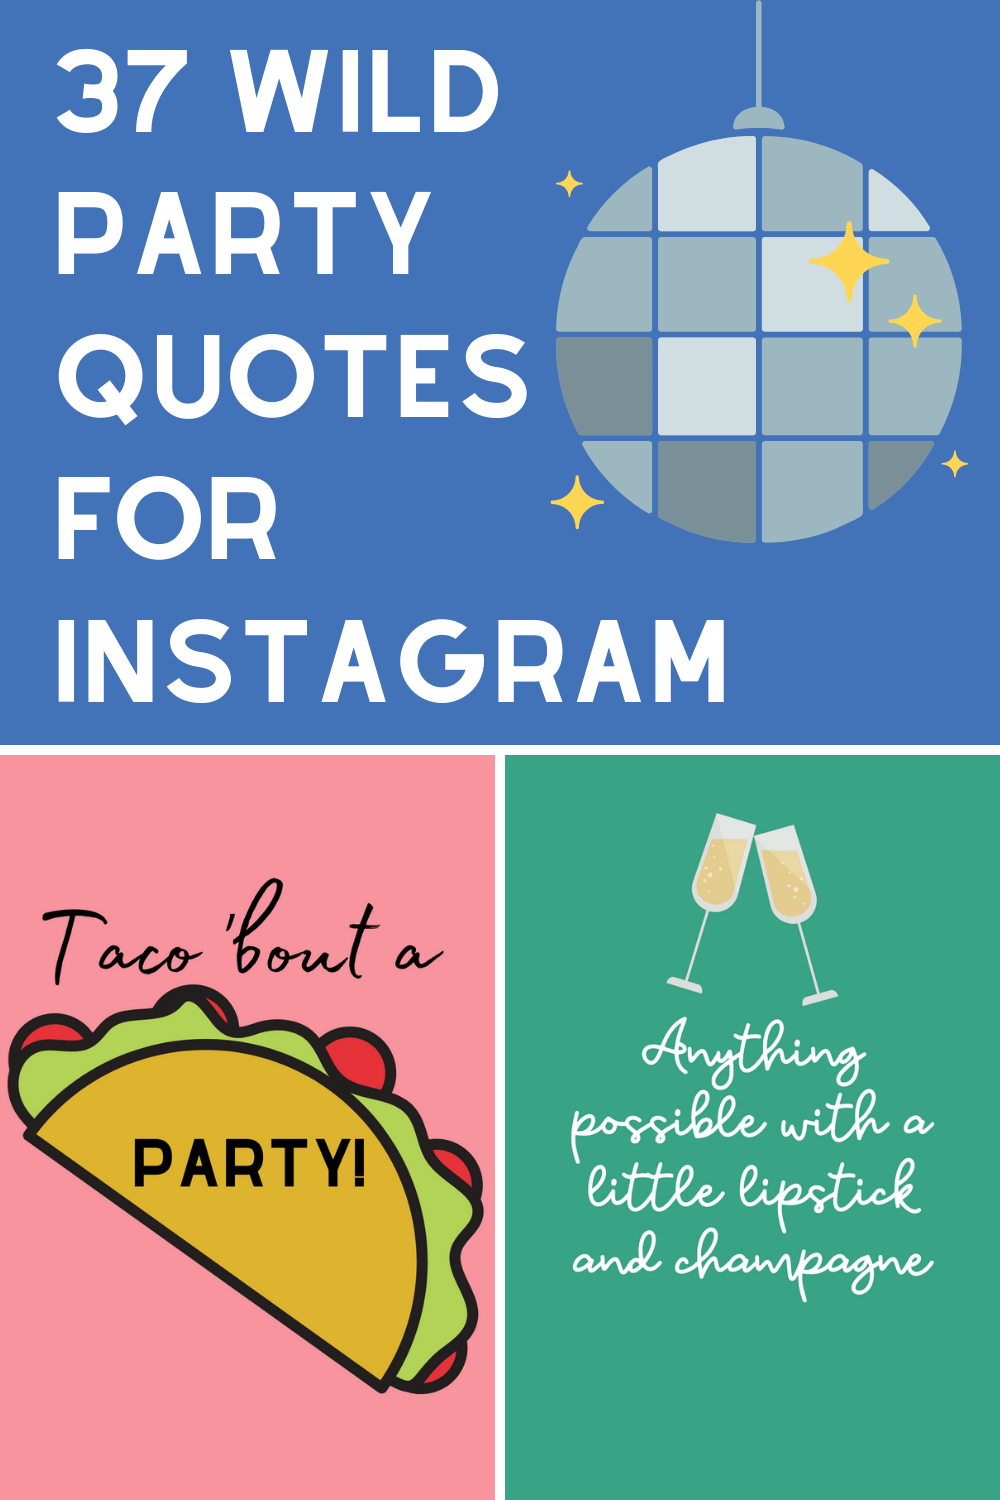 Party Quotes for Instagram